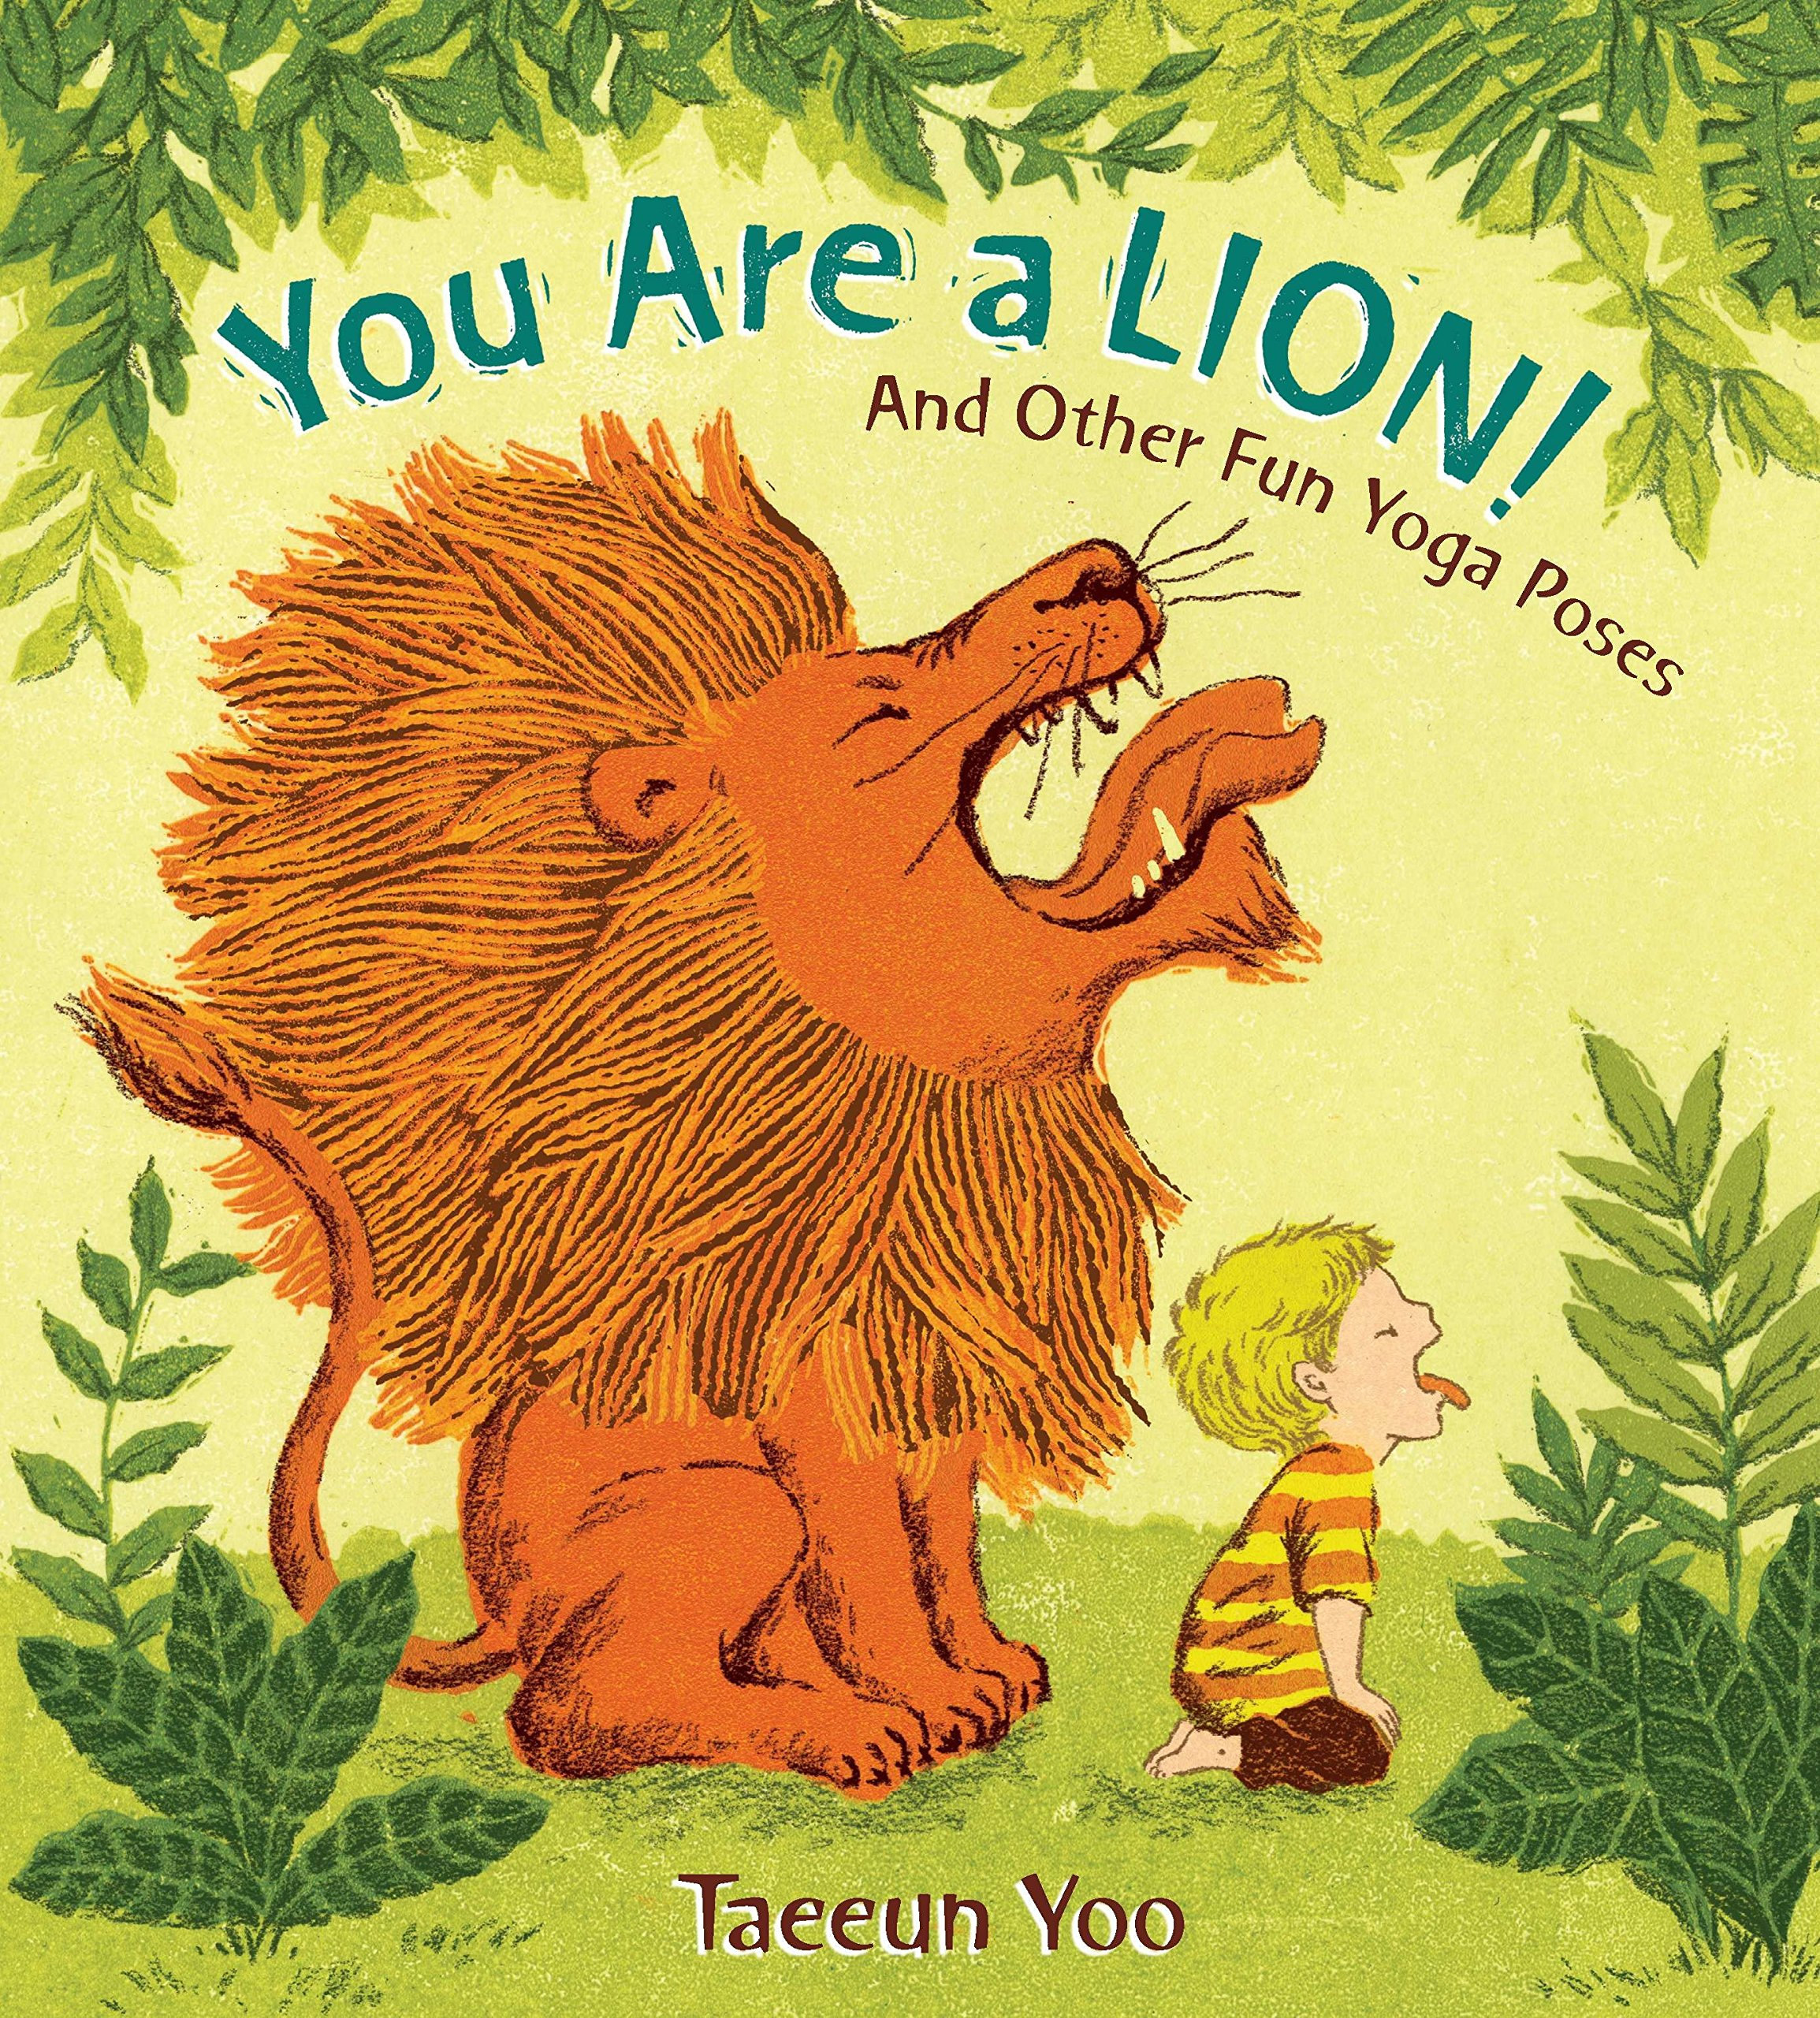 You Are a Lion!: And Other Fun Yoga Poses: Yoo, Taeeun, Yoo, Taeeun:  9780399256028: Amazon.com: Books